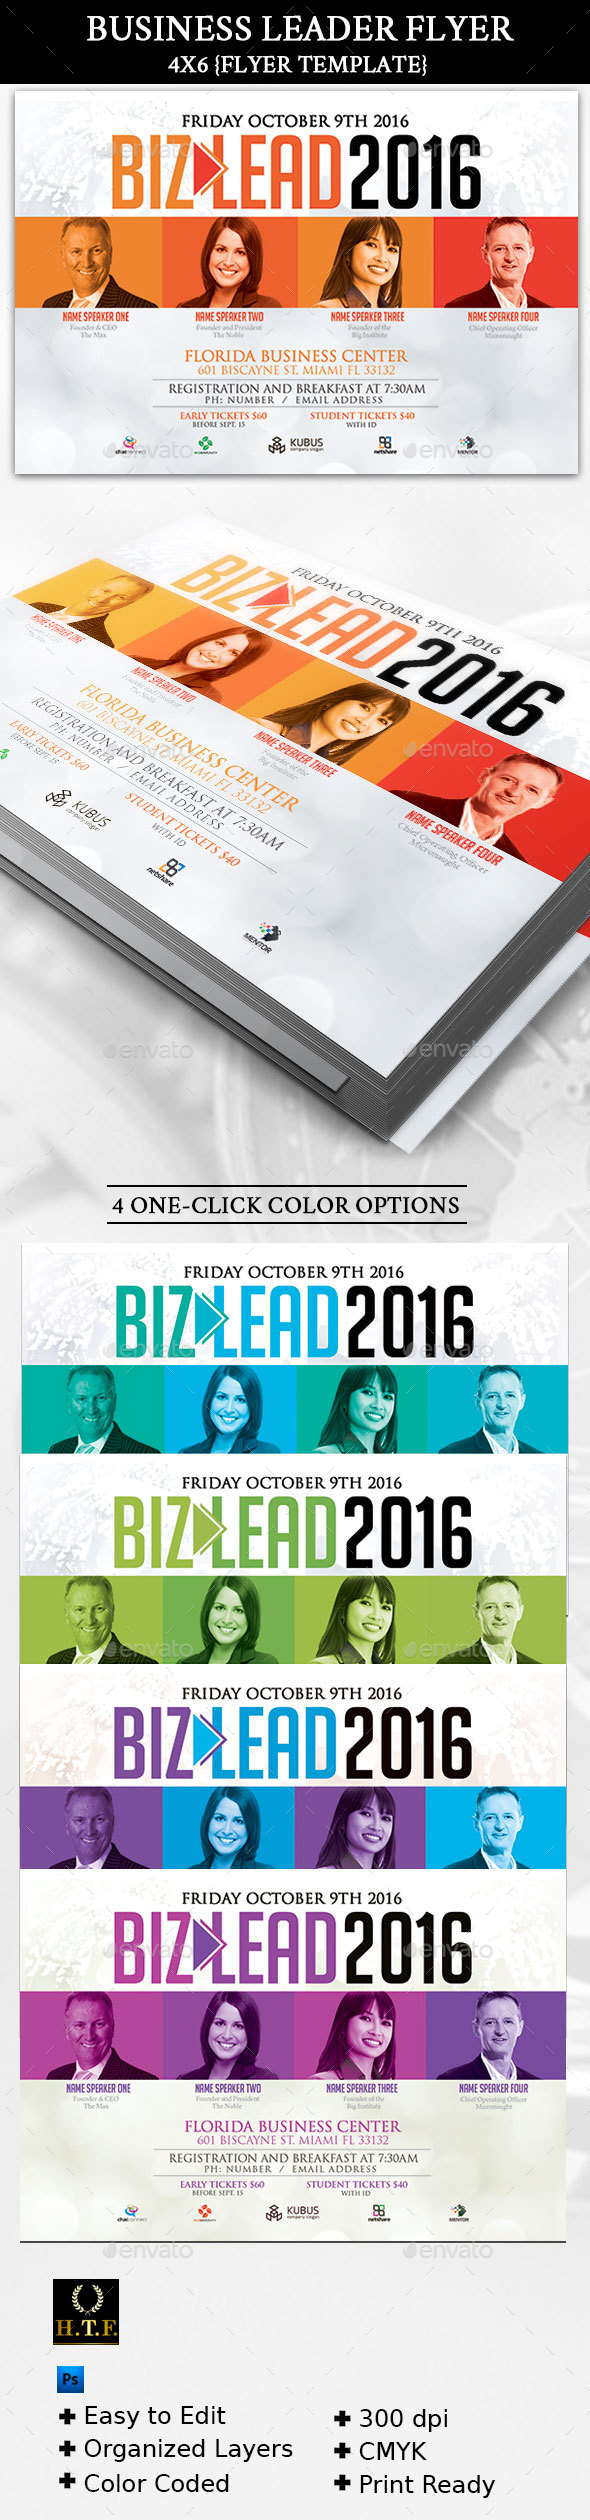 Business Leader Flyer Template - Corporate Flyers